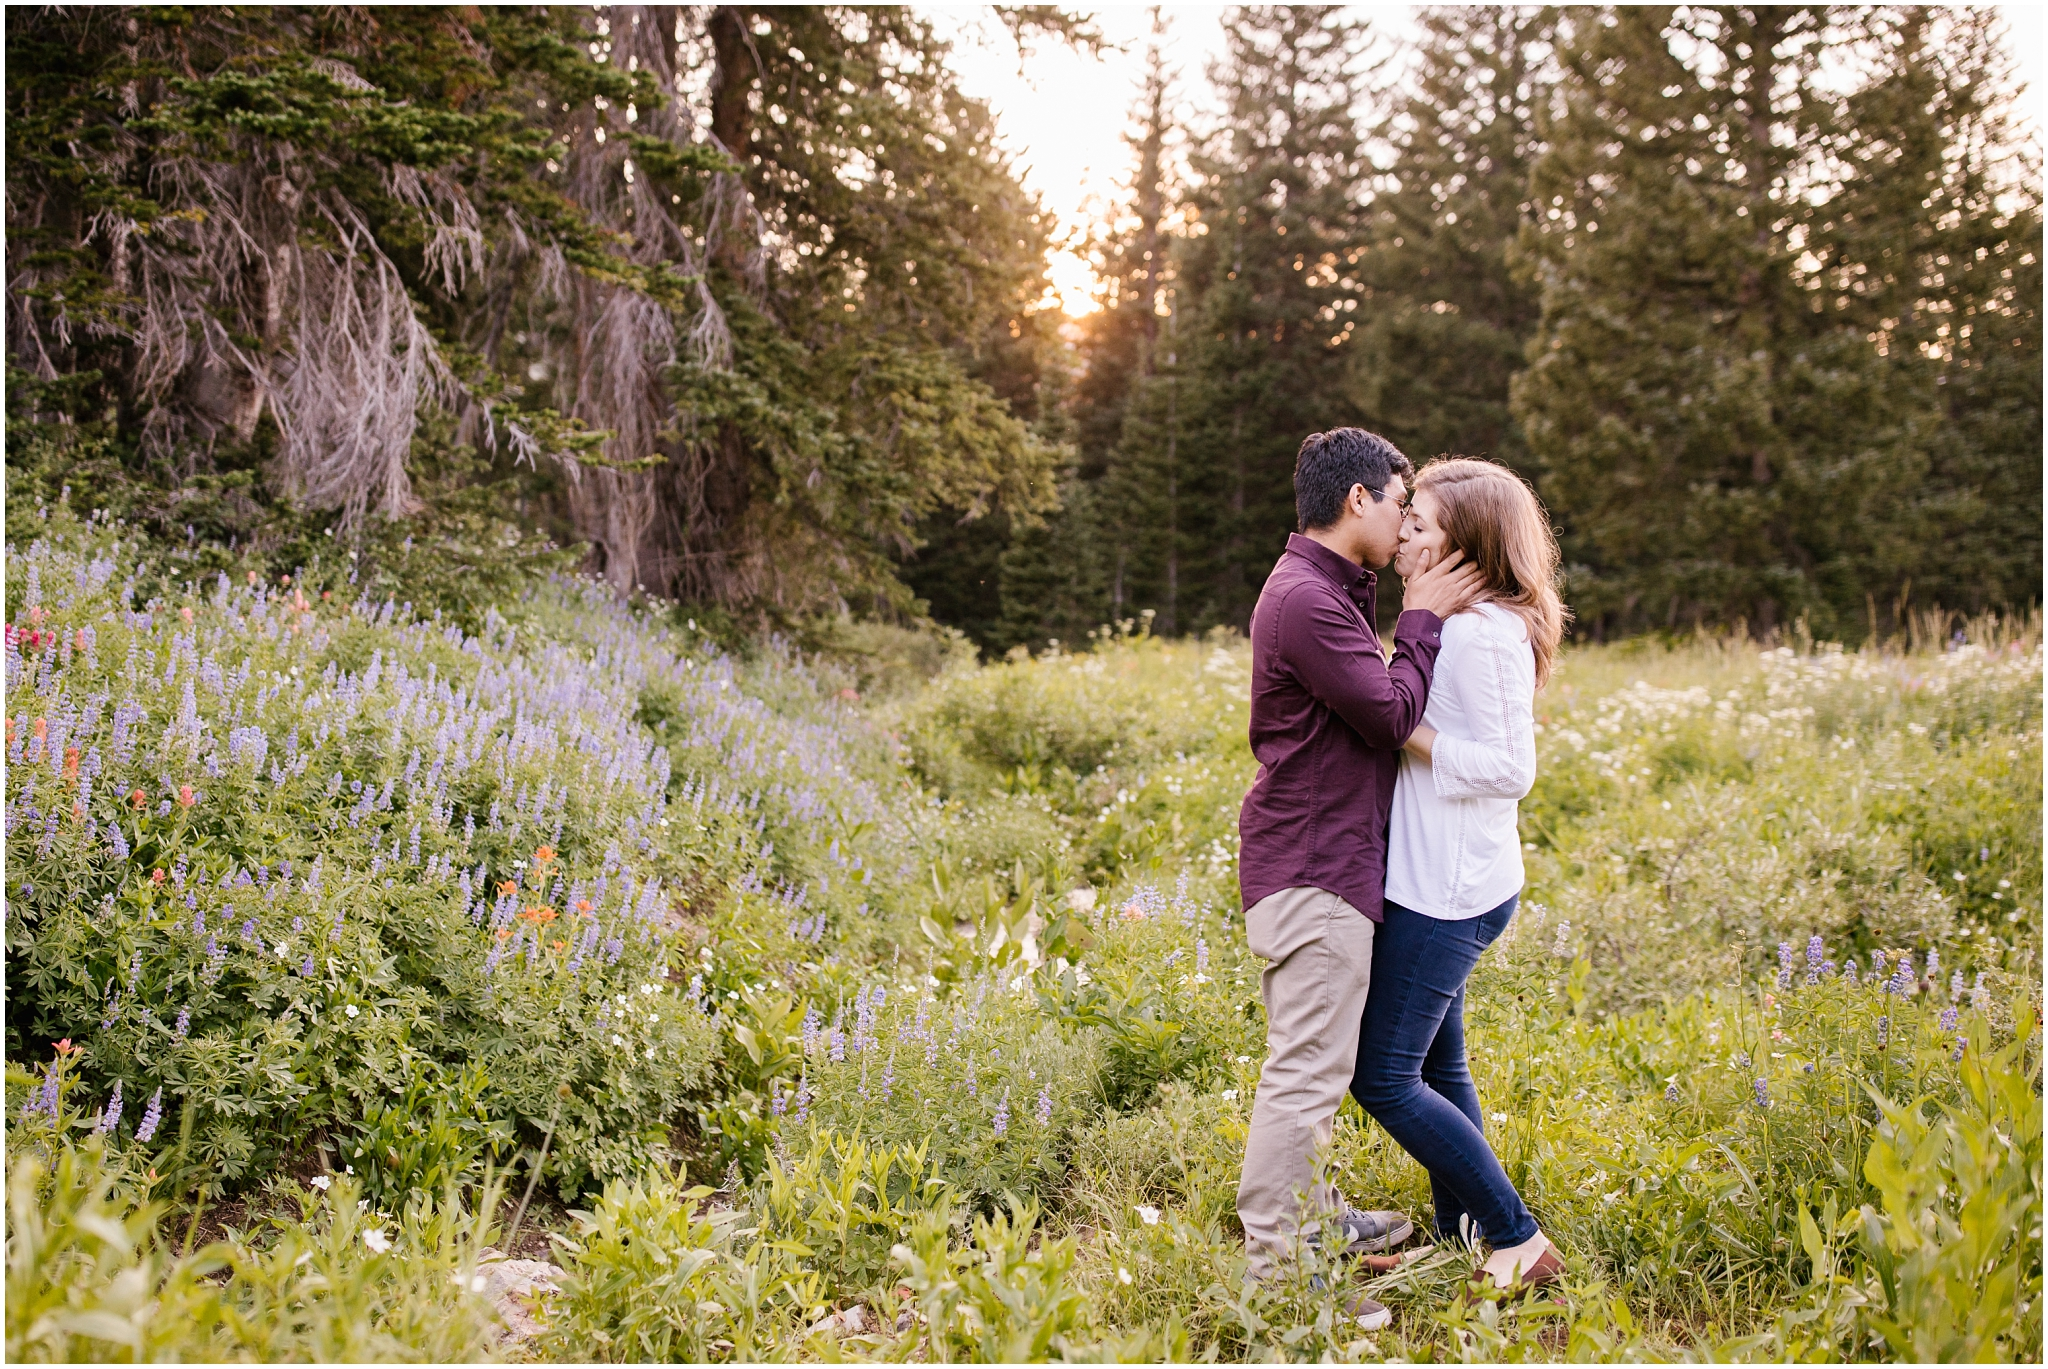 Harold and Emma-124_Lizzie-B-Imagery-Utah-Wedding-Photographer-Central-Utah-Park-City-Salt-Lake-City-Albion-Basin-Engagement-Session.jpg